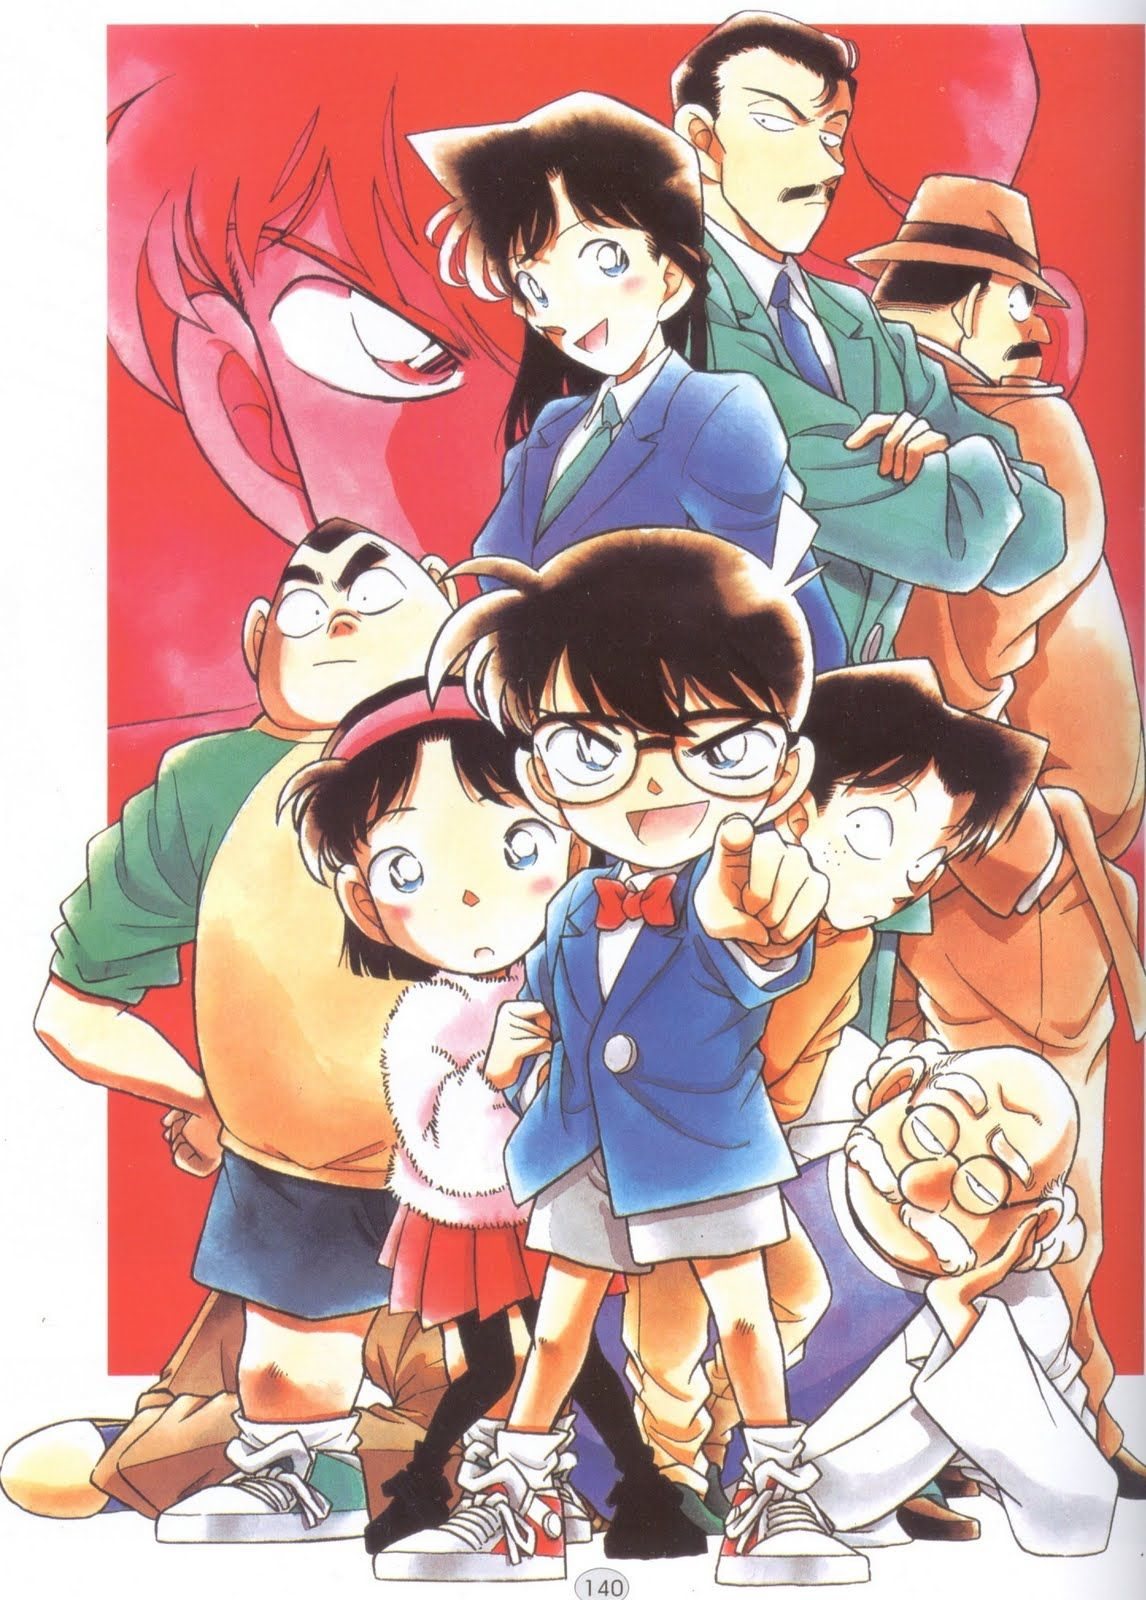 Case Closed Anime that needs more viewers. It's so good